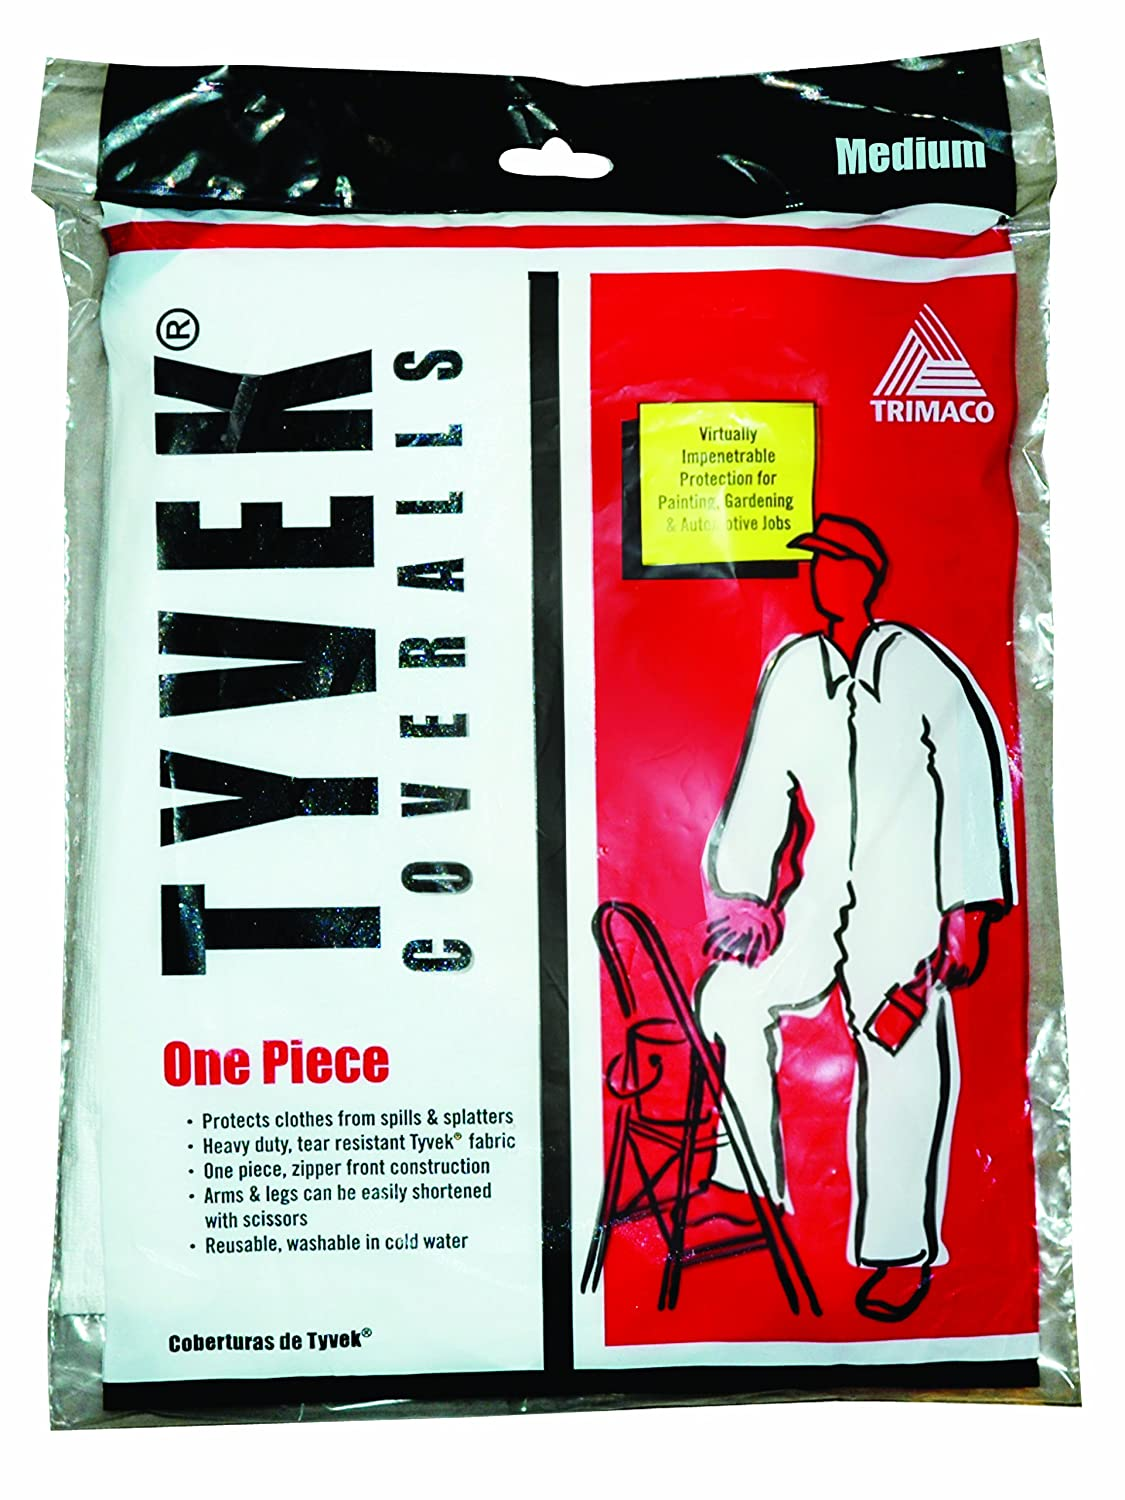 Trimaco 450-544 Painter's Tyvek HD Heavy-Duty Coveralls, White Paint Sundries Solutions 047034141248